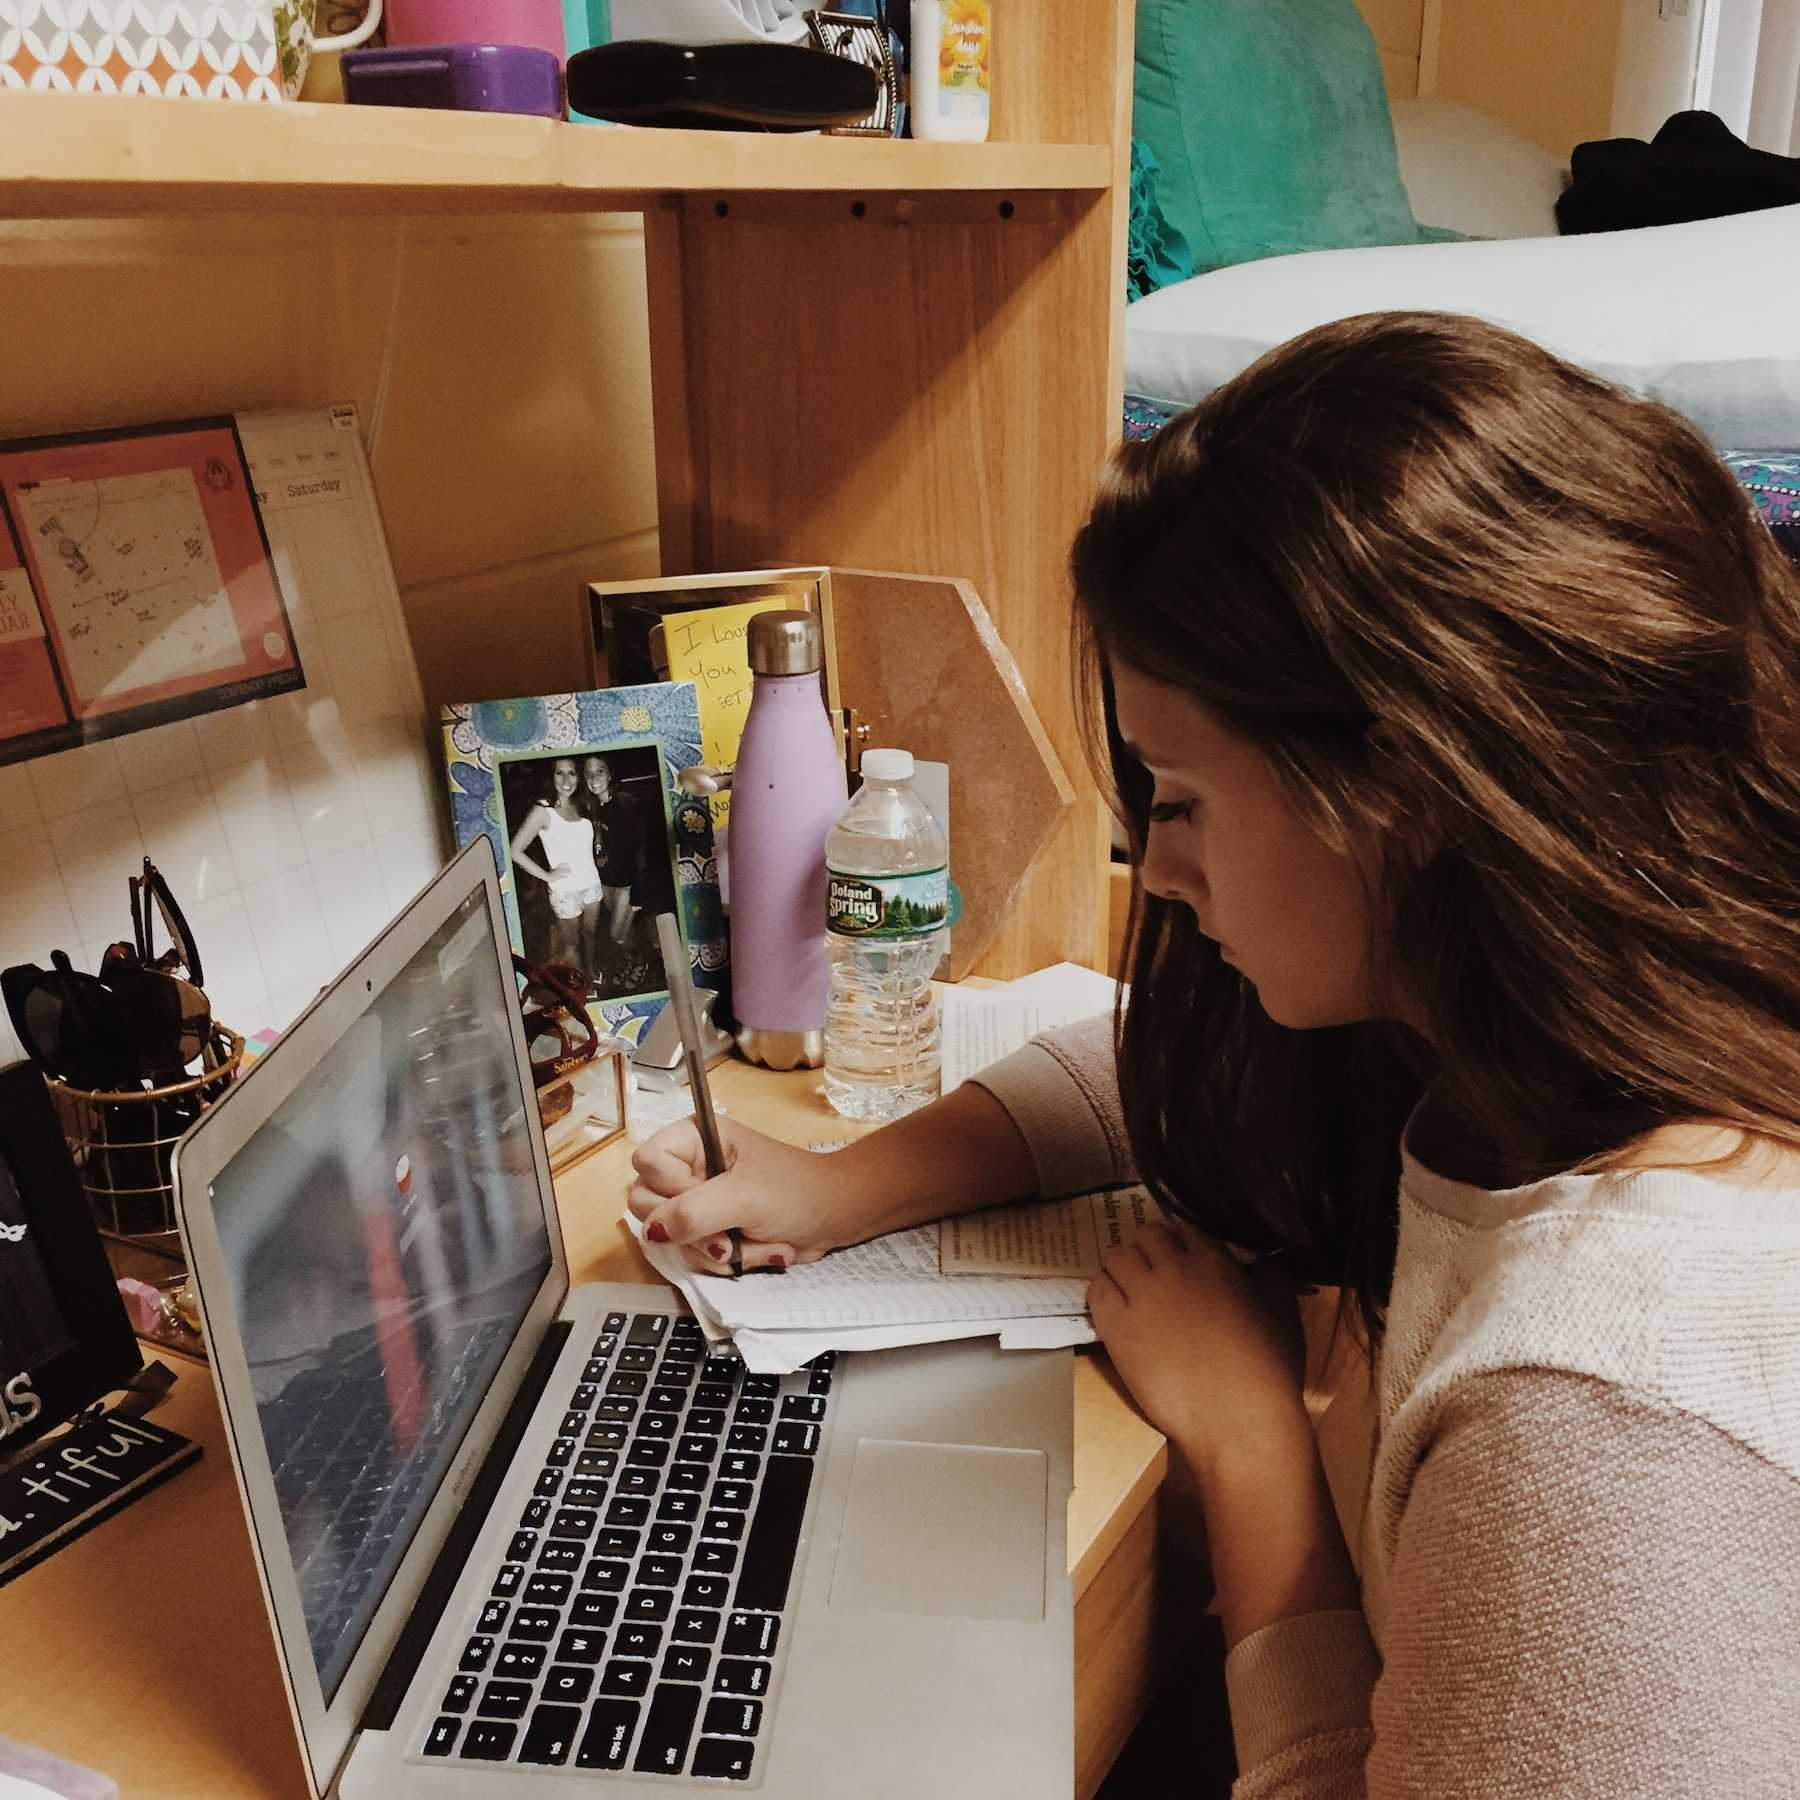 Caitlin Burke, class of 2016, works at her desk inside her dorm room at Salisbury University in Maryland.